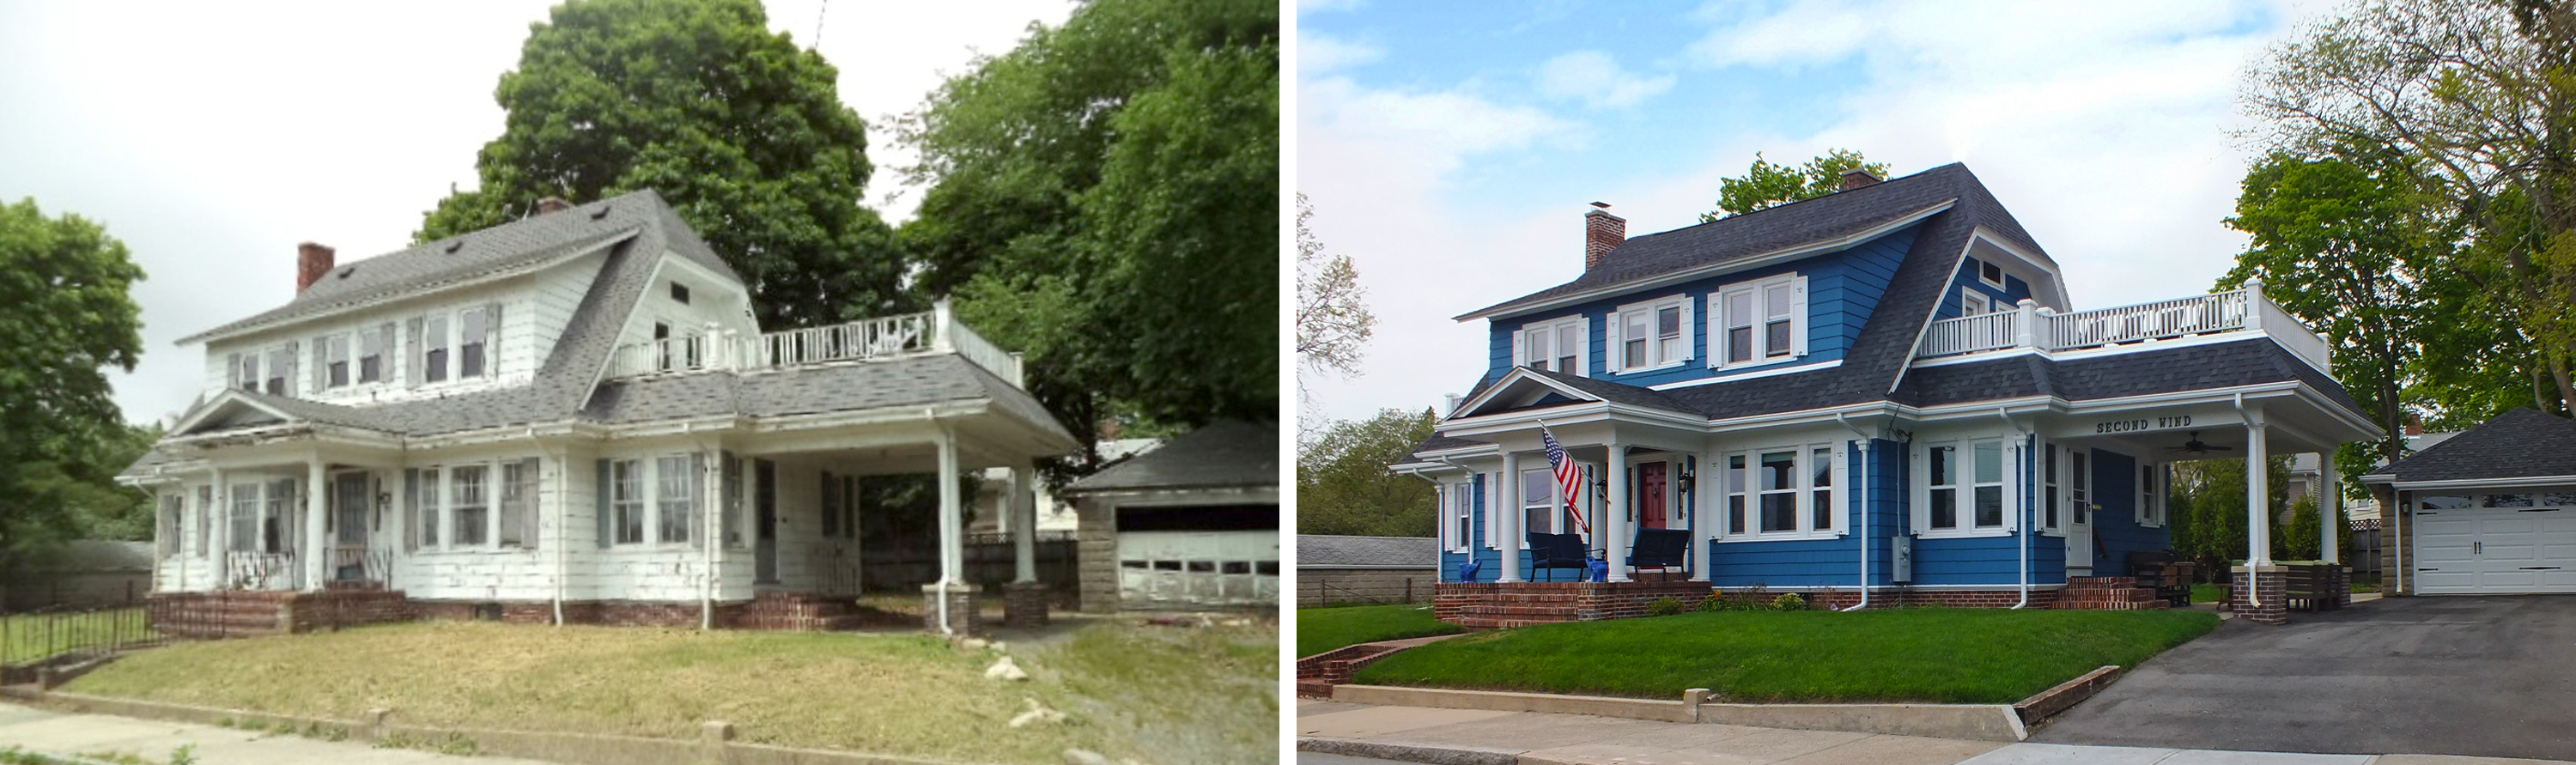 Dutch Colonial Renovation Before and After